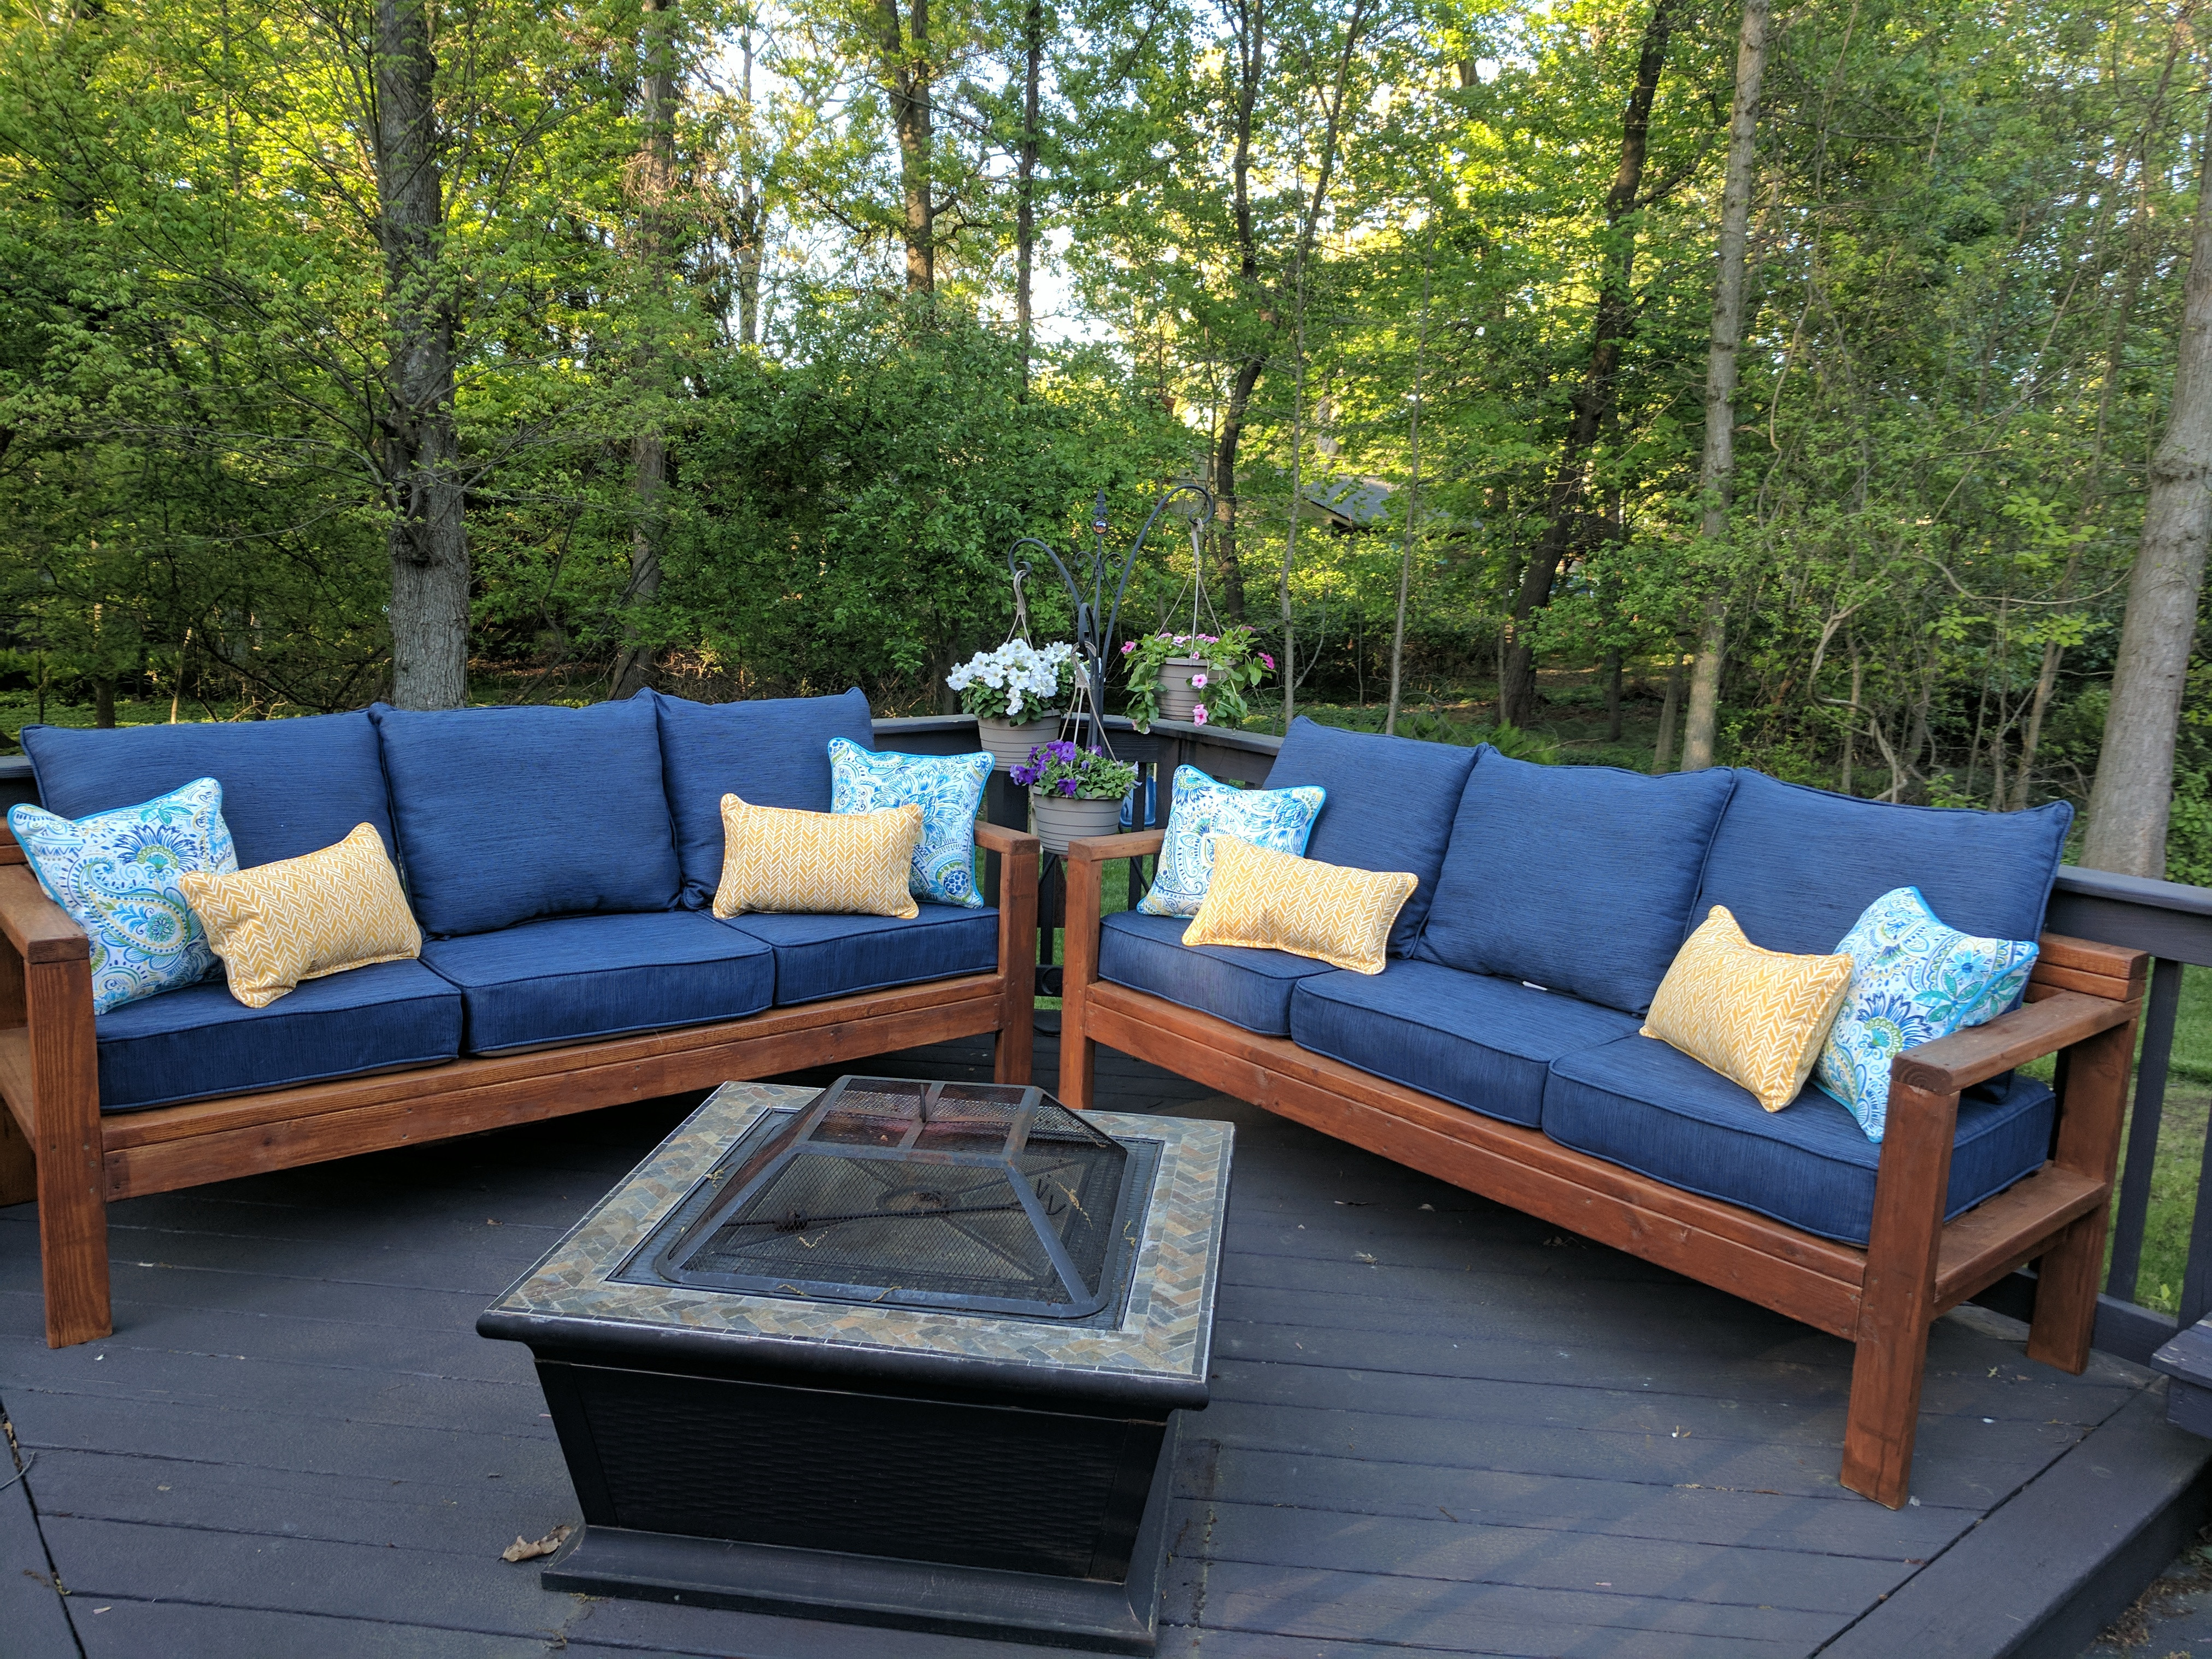 Best ideas about Outdoor Furniture DIY . Save or Pin Ana White Now.